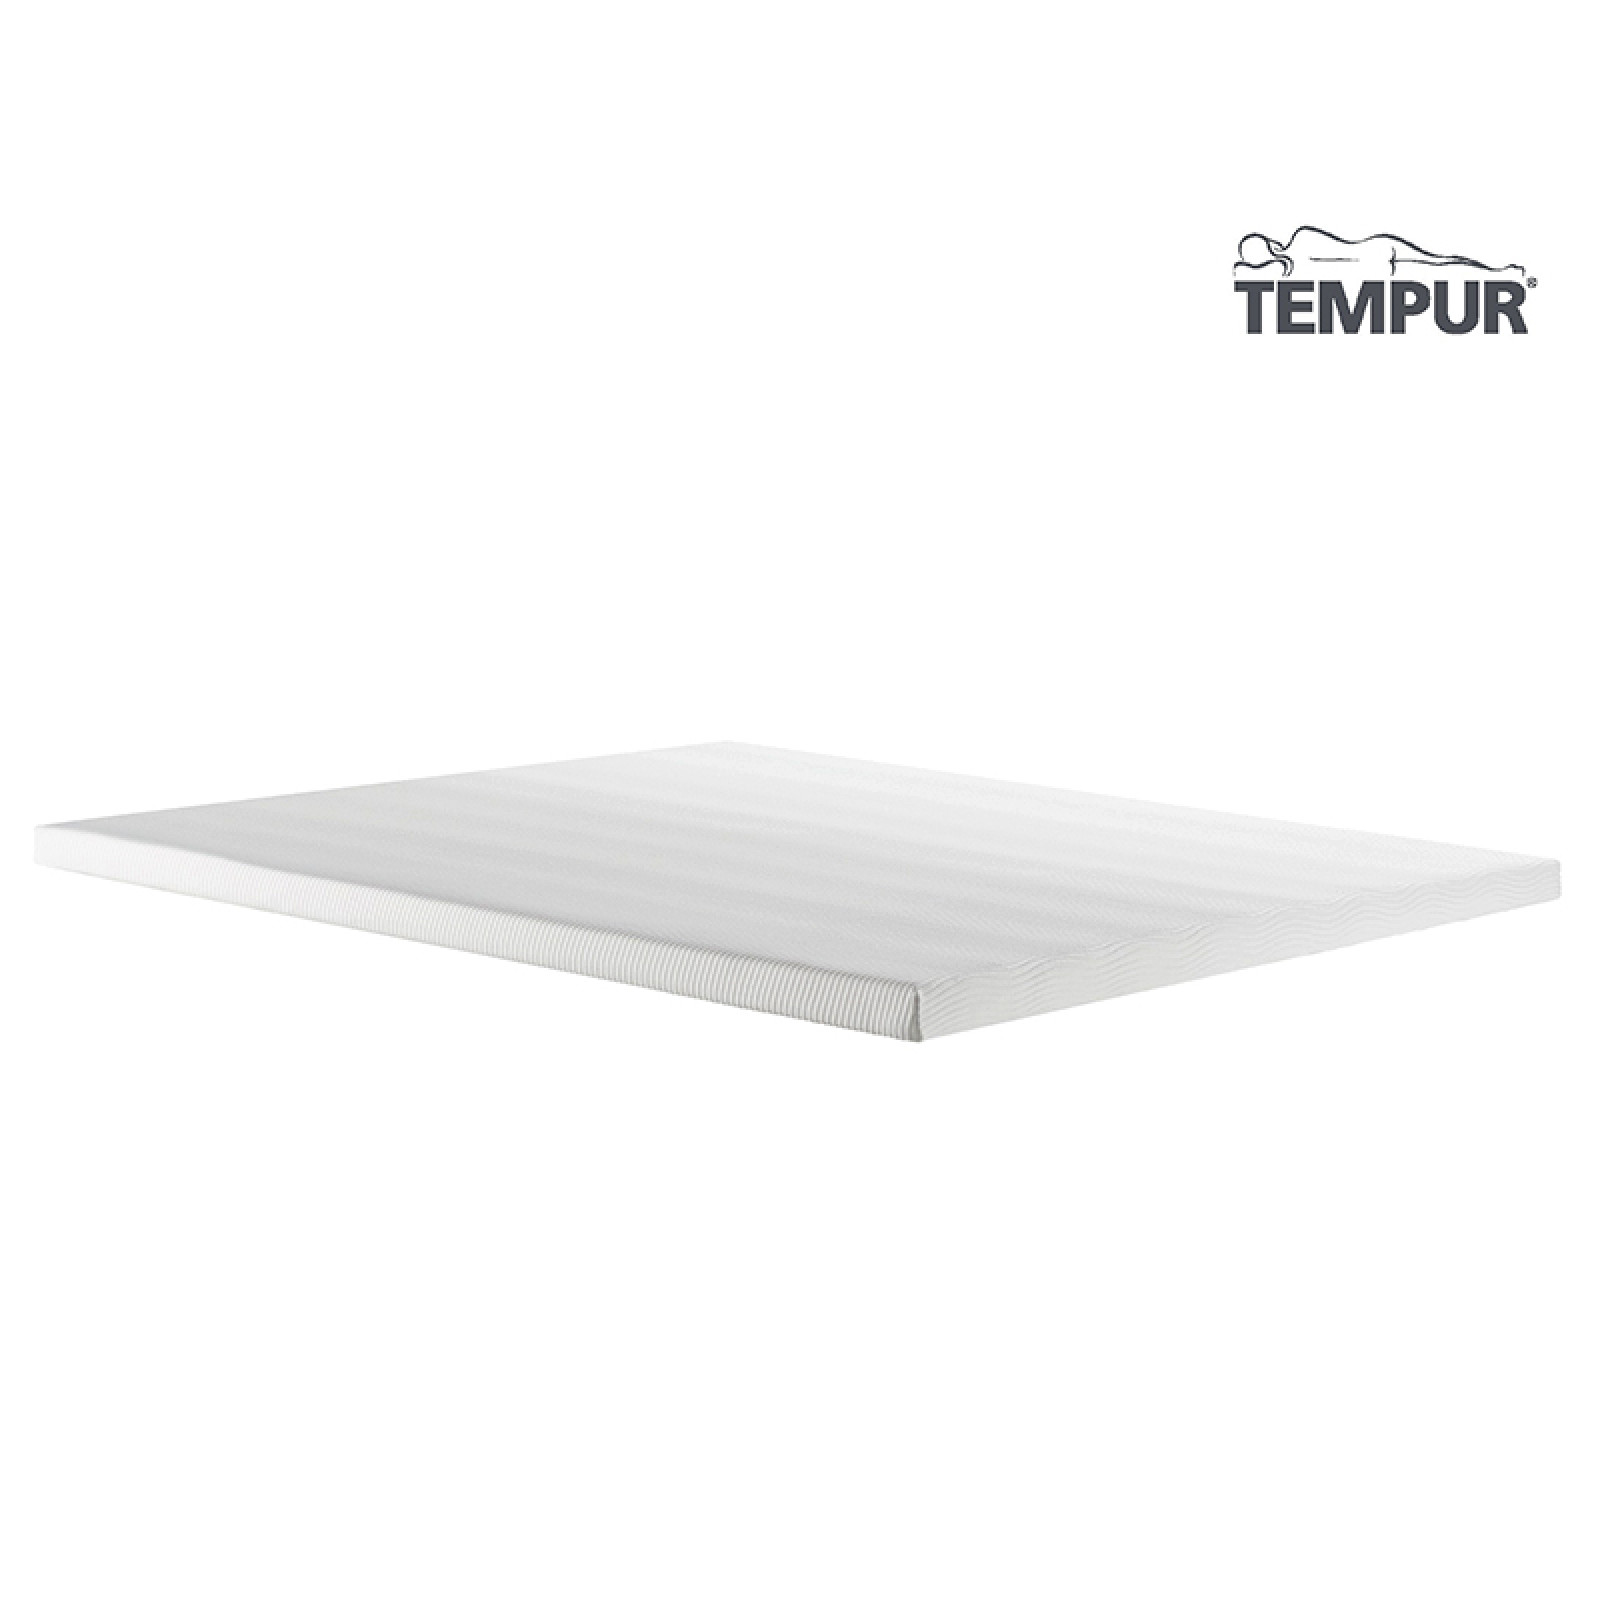 TEMPUR Topper 7 Sensation